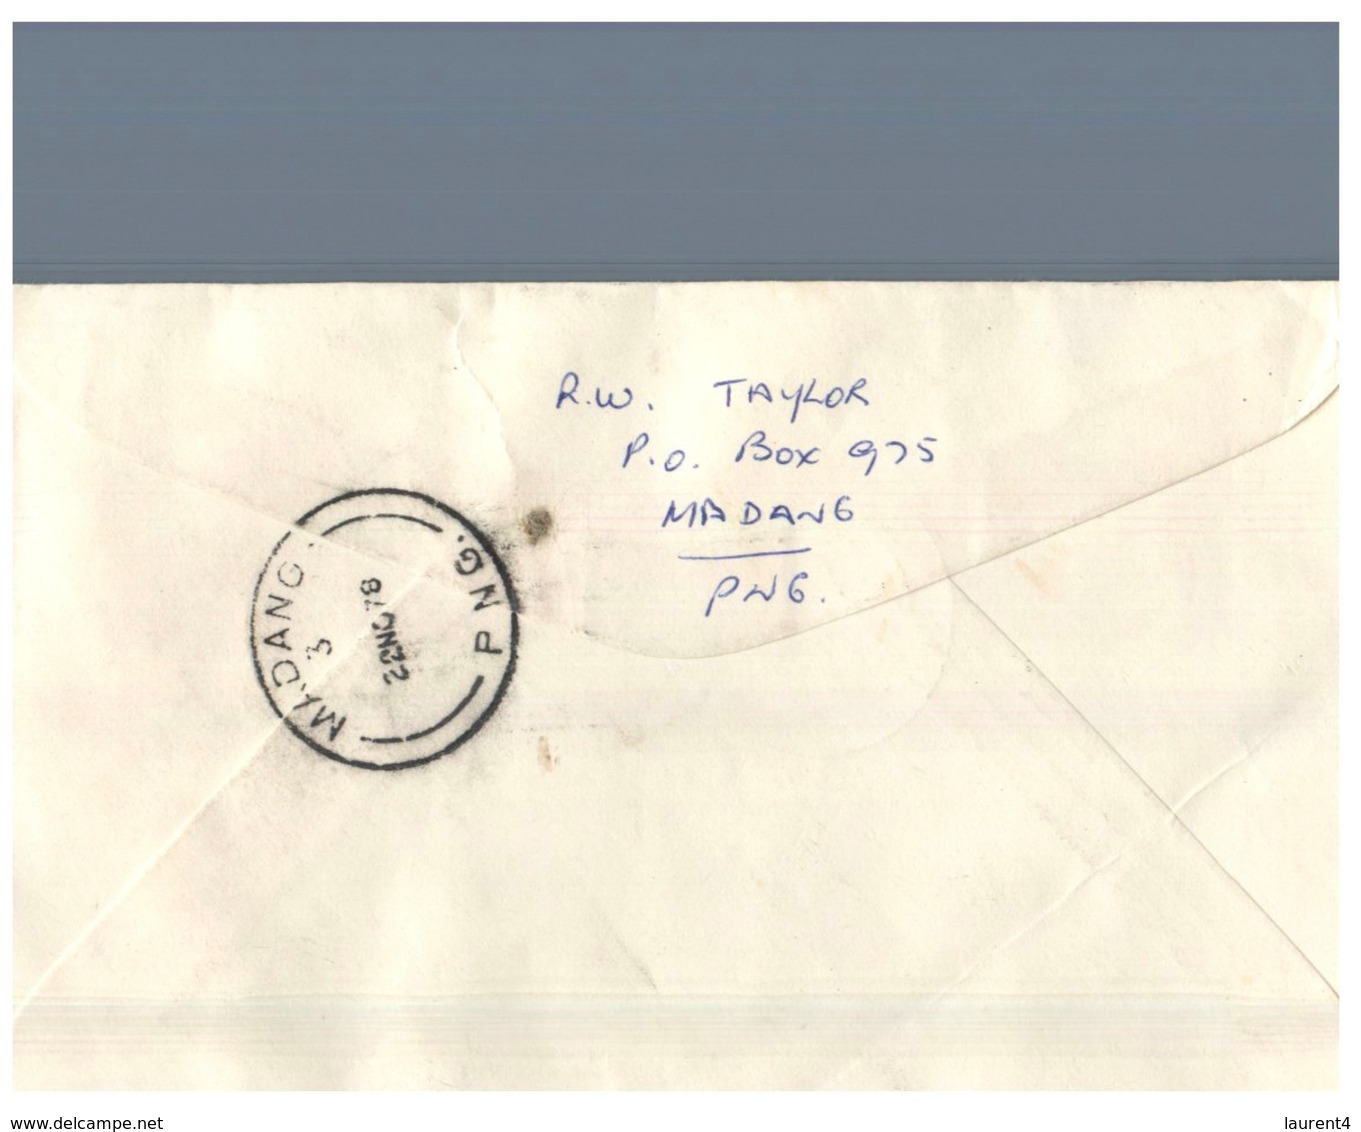 (155) Papua New Guinea To Australia QLD - FDC Letter - 1978 - Madang Postmark At Back Of Letter - Papouasie-Nouvelle-Guinée